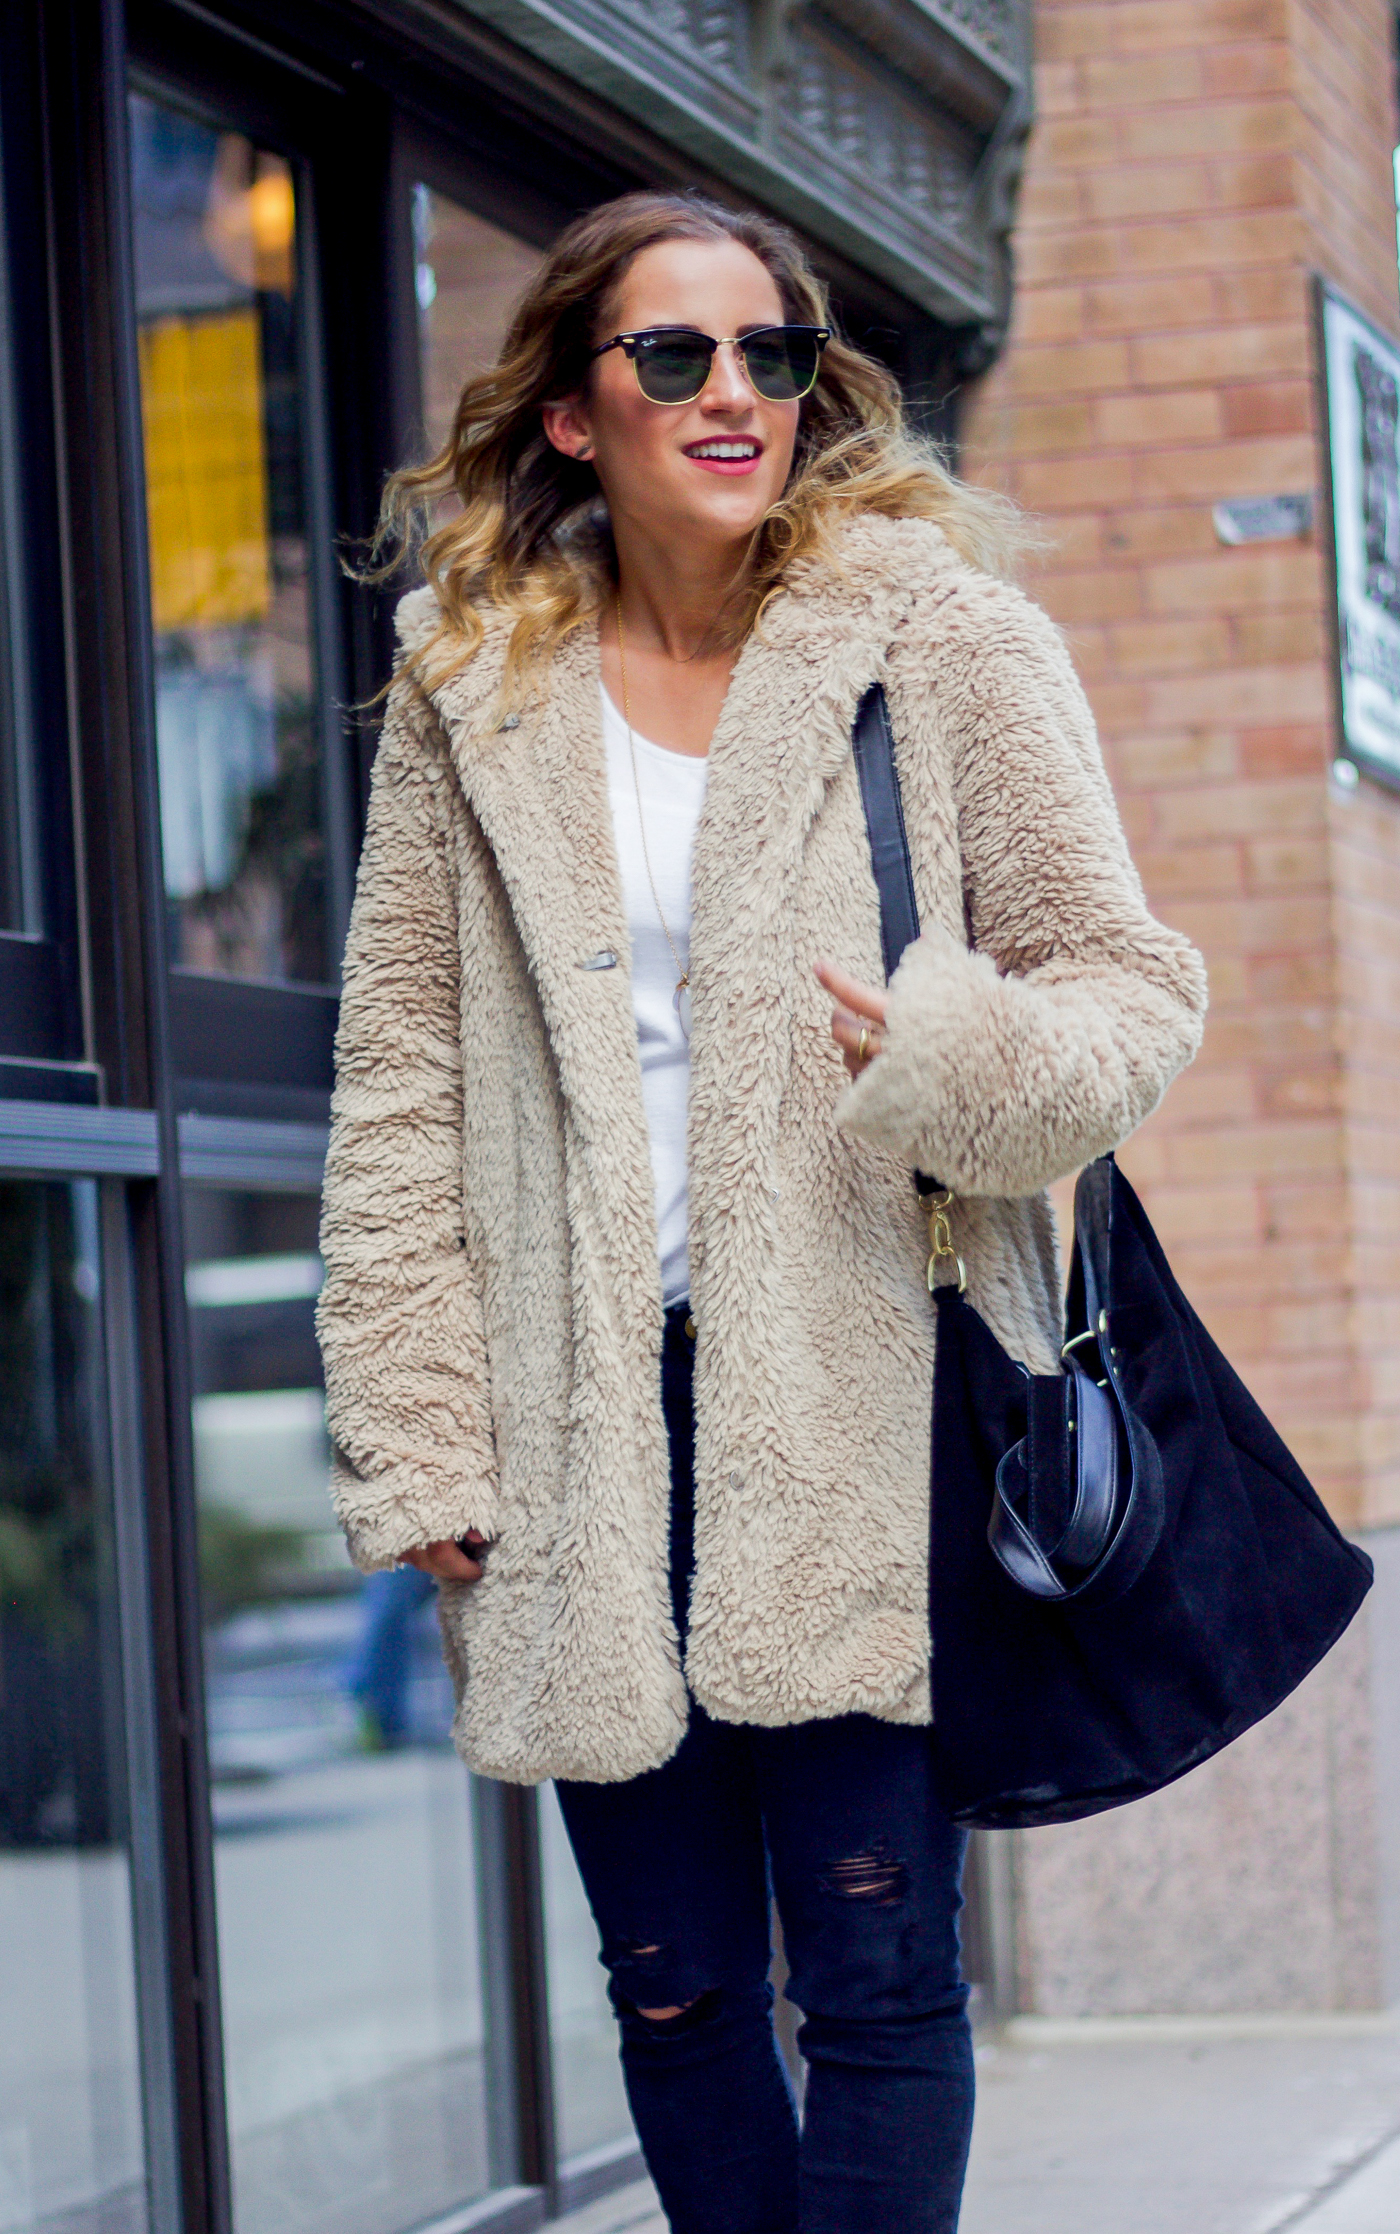 Toronto fashion and lifestyle blogger, Jackie Goldhar of Something About That, wearing a Gap sherpa coat for winter